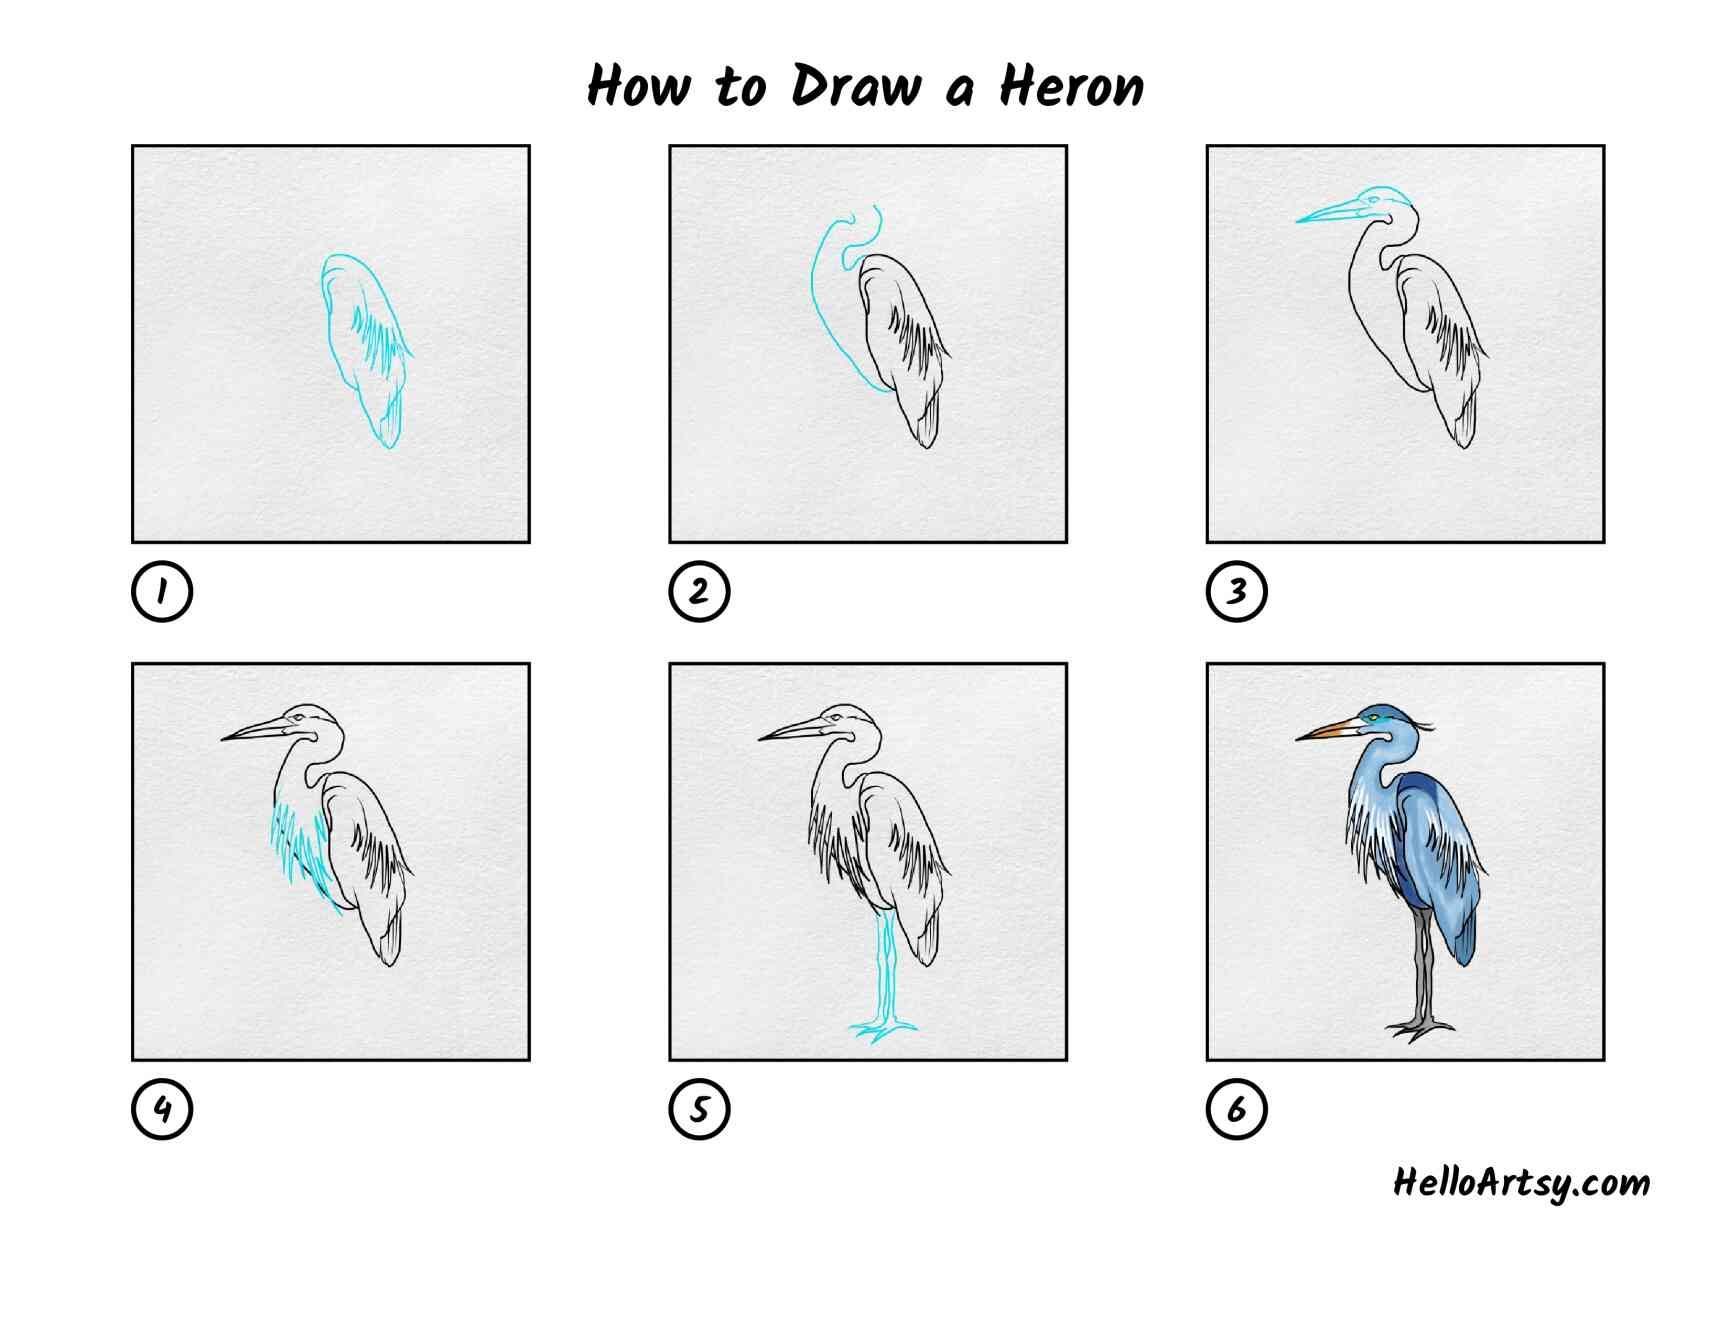 How To Draw A Heron: All Steps